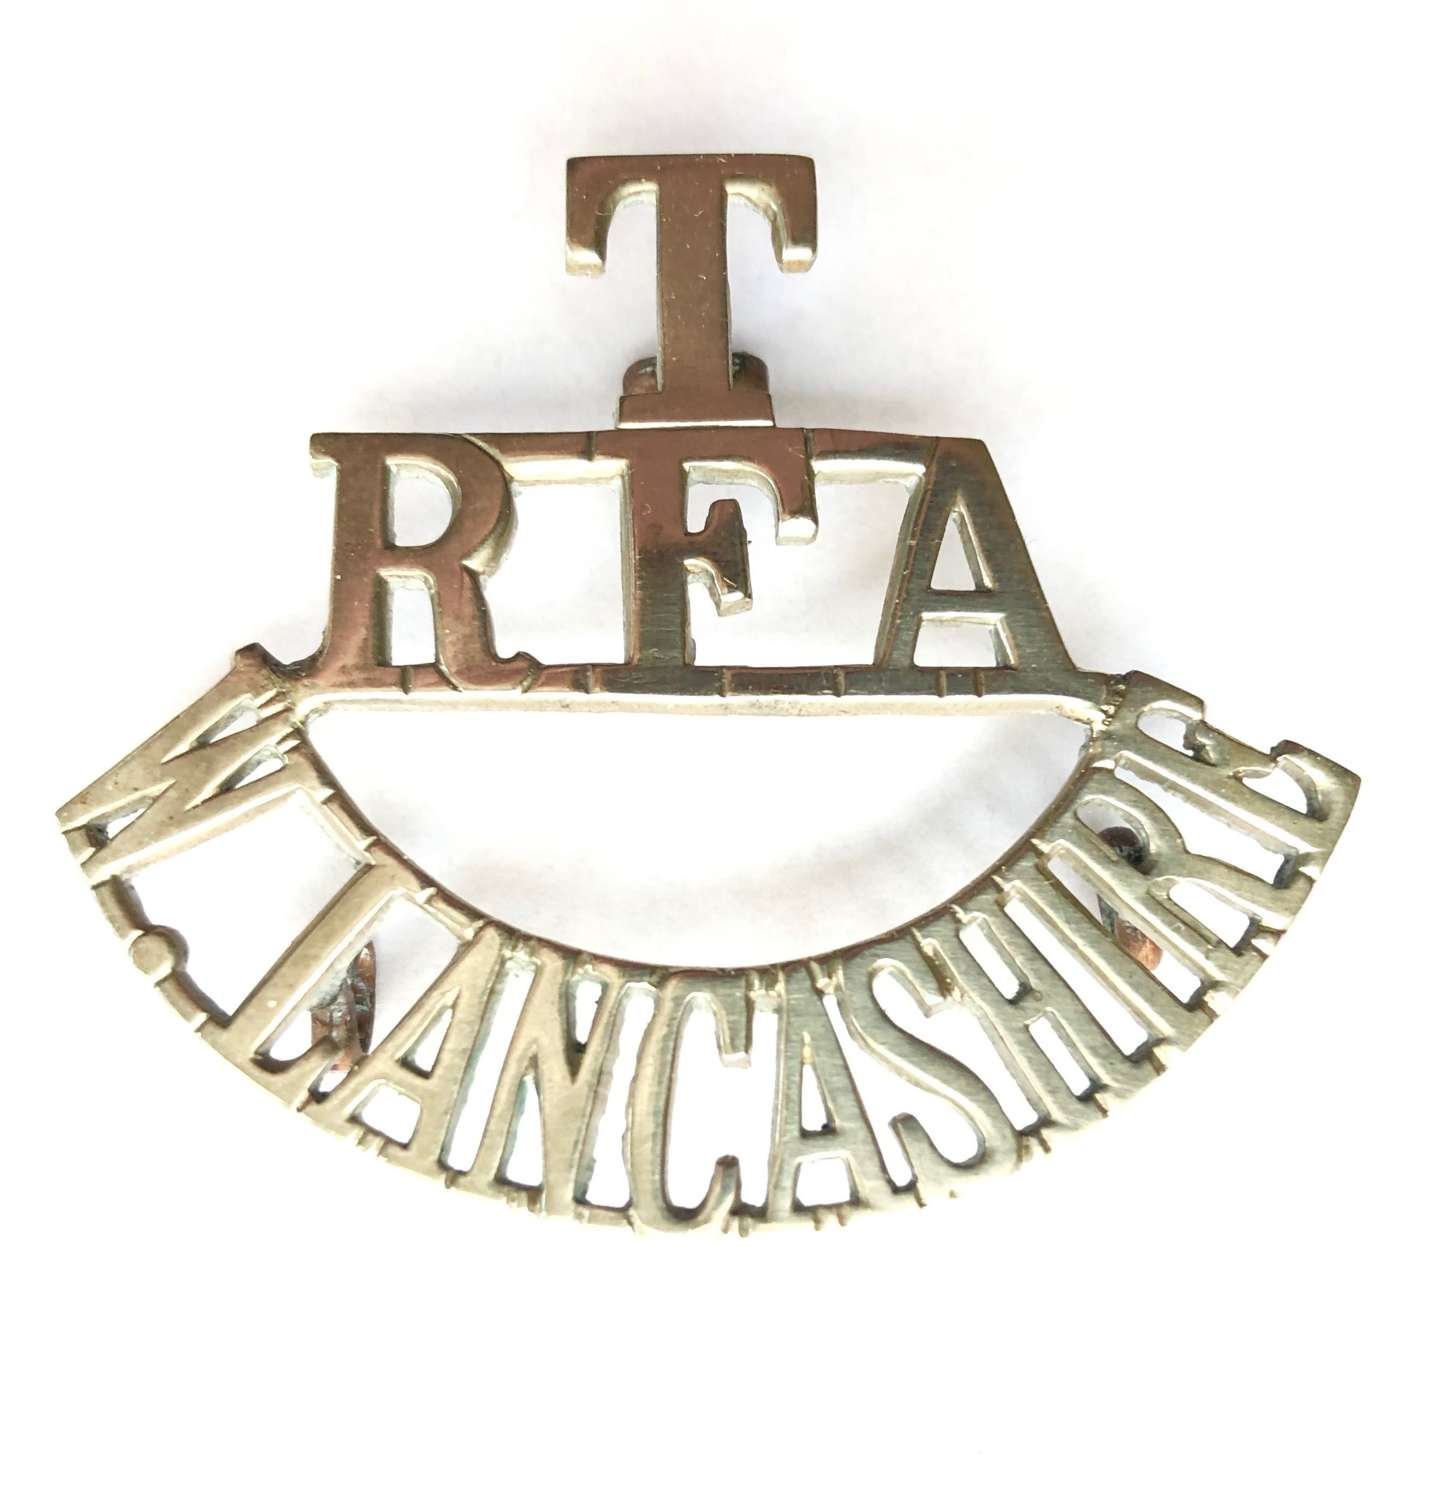 T / RFA / W.LANCASHIRE white metal Royal Field Artillery title